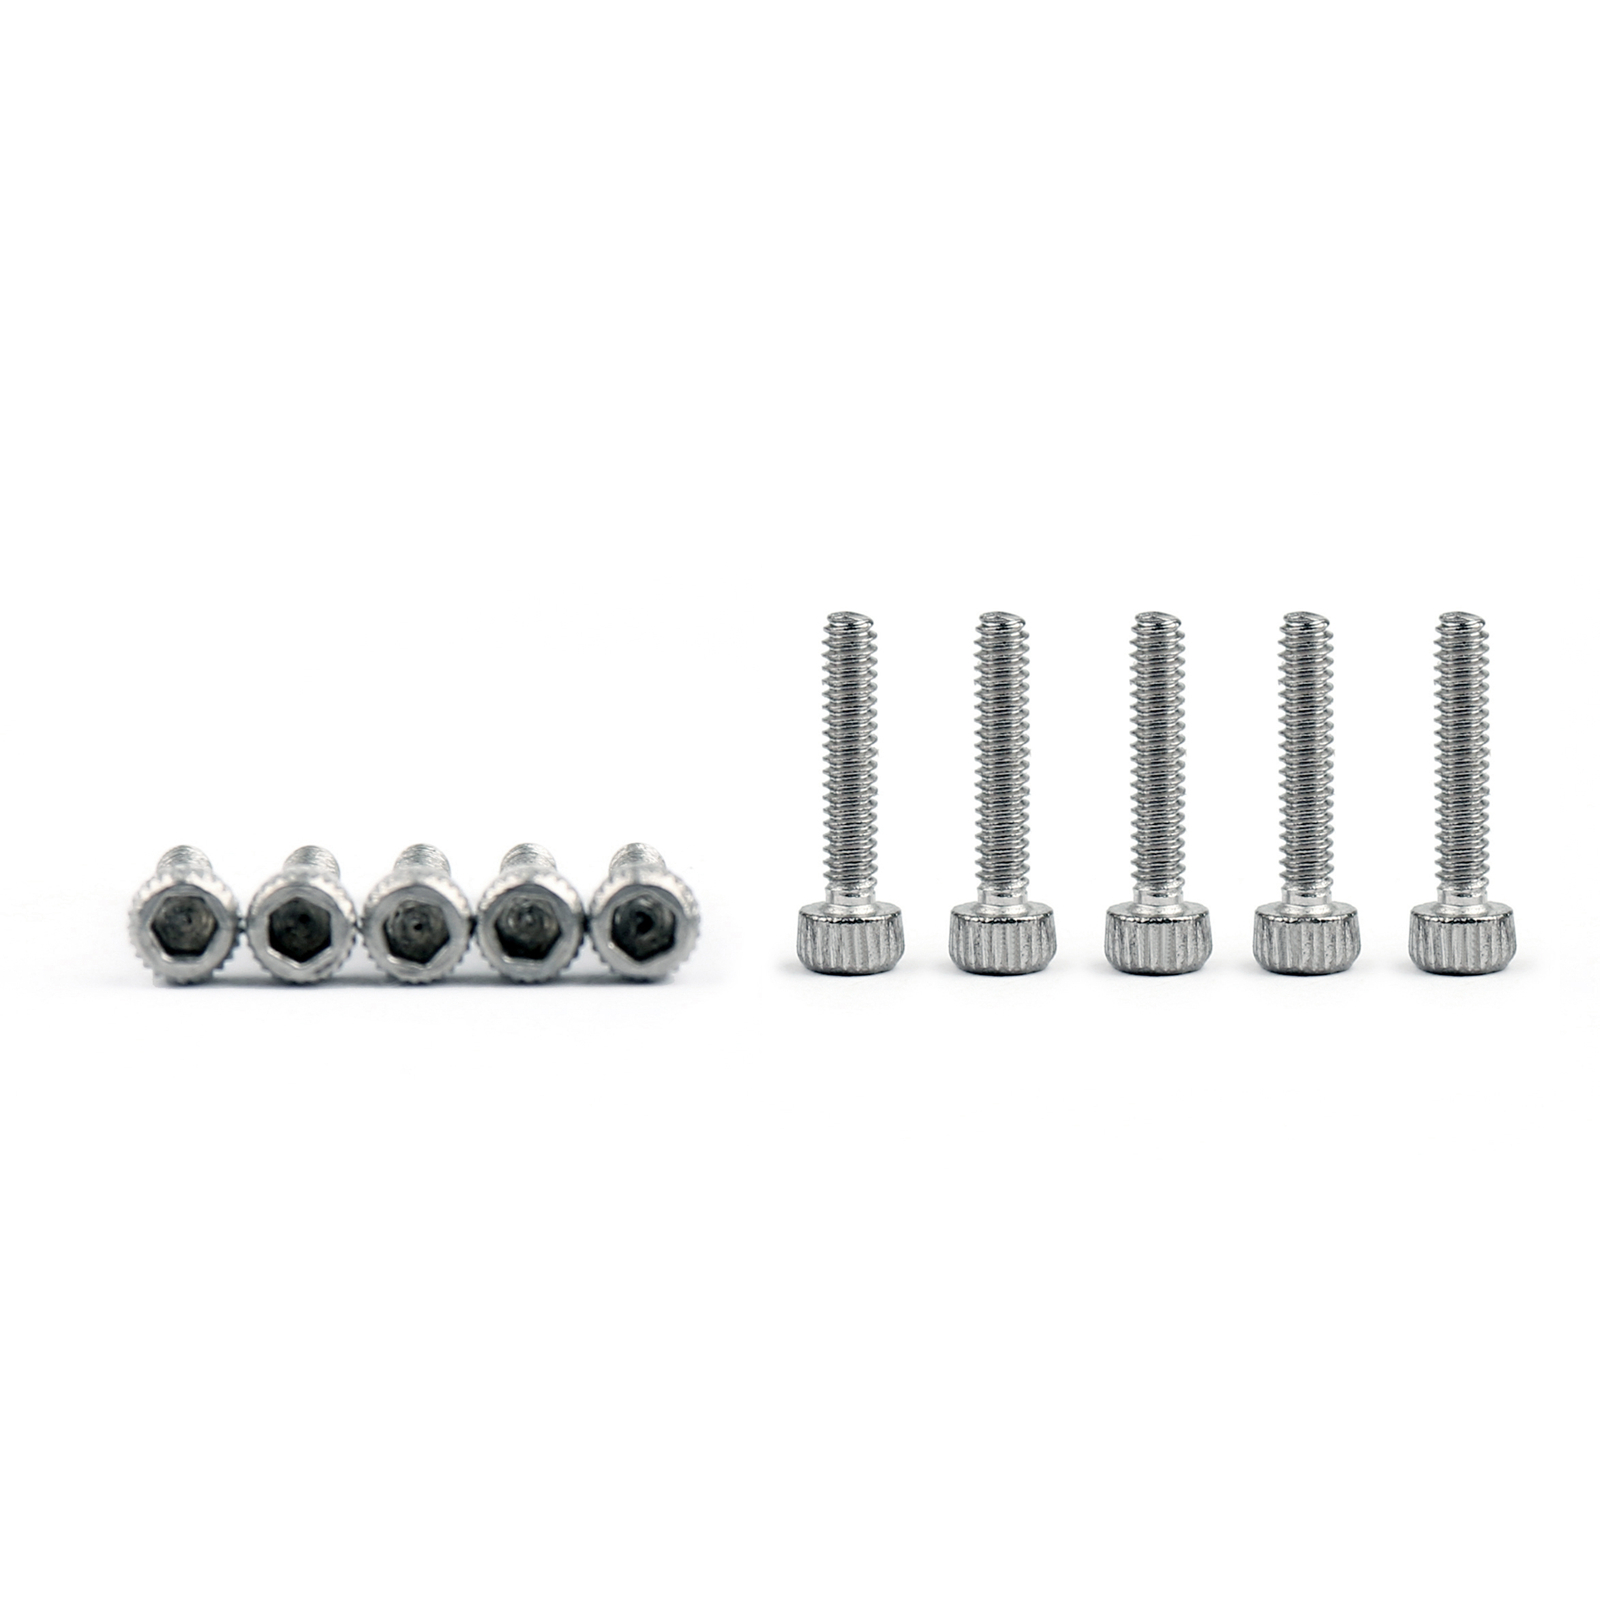 M2 Allen Bolt Hex Socket Head Screw Stainless 304 Steel